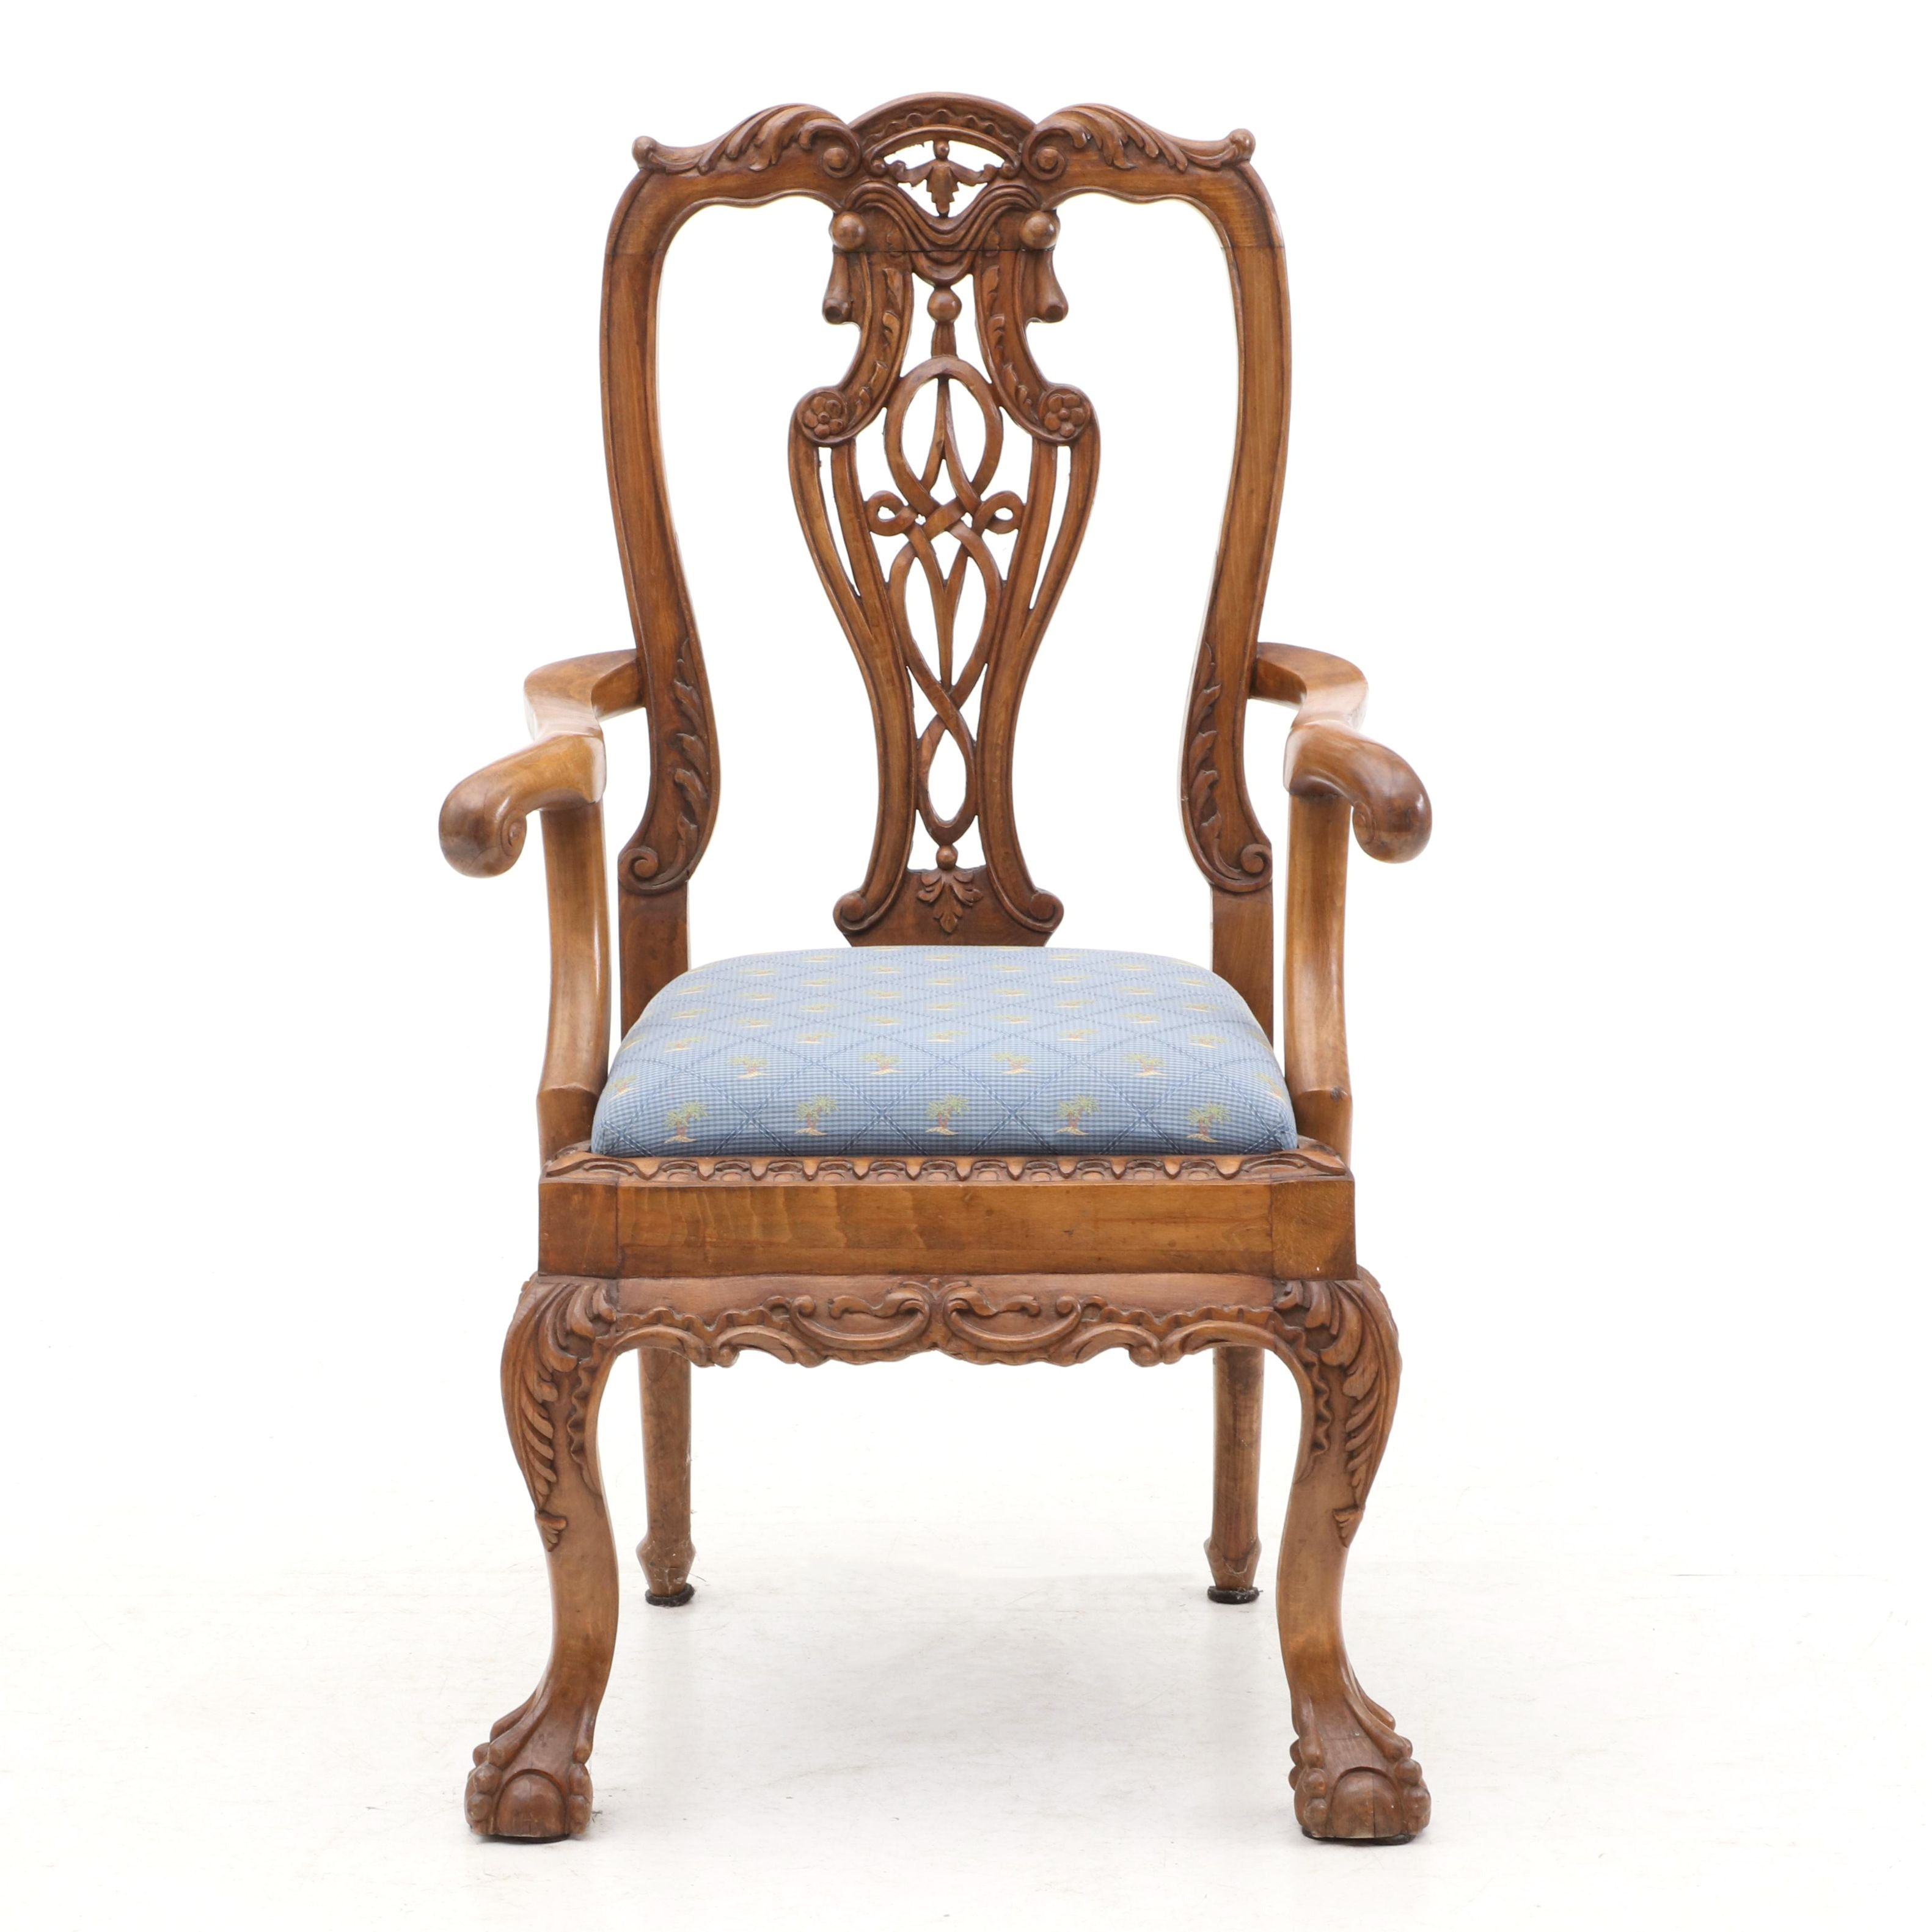 Carved Rococo Style Arm Chair in Walnut